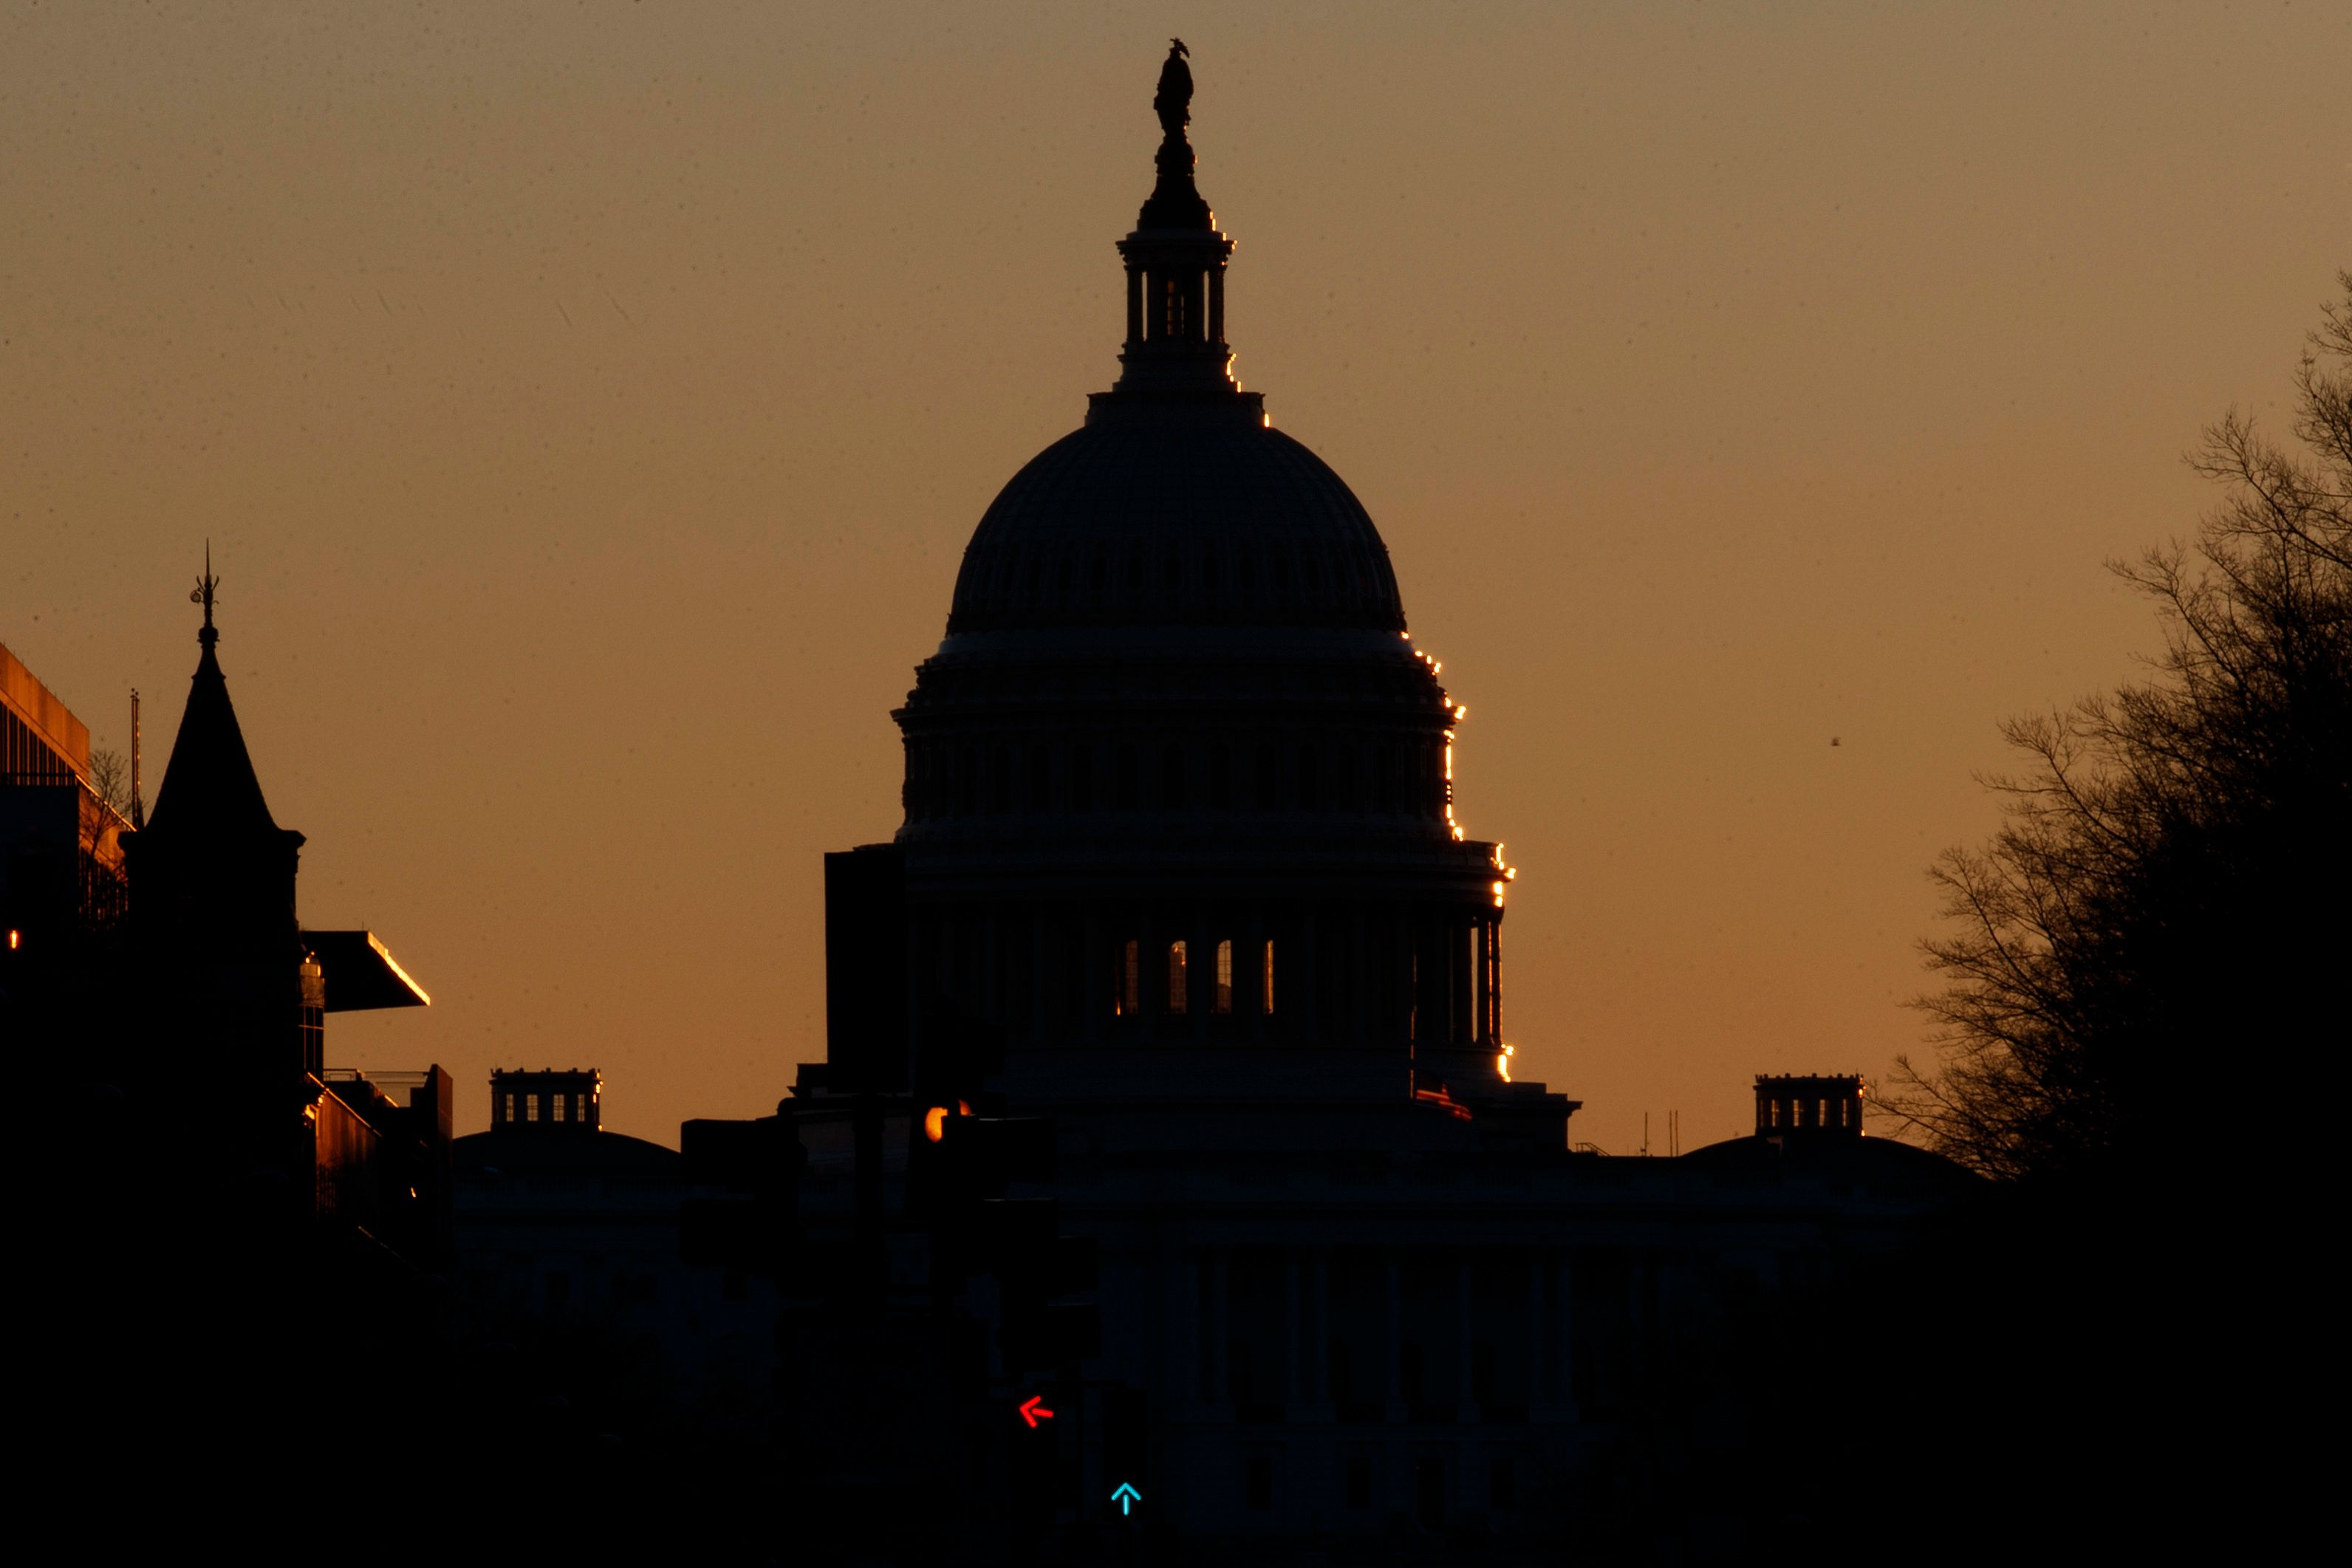 The U.S. Capitol Dome is seen in silhouette as the sun rises in Washington, Sunday, Dec. 23, 2018. The federal government is expected to remain partially closed past Christmas Day in a protracted standoff over President Donald Trump's demand for money to build a border wall with Mexico. (AP Photo/Carolyn Kaster)